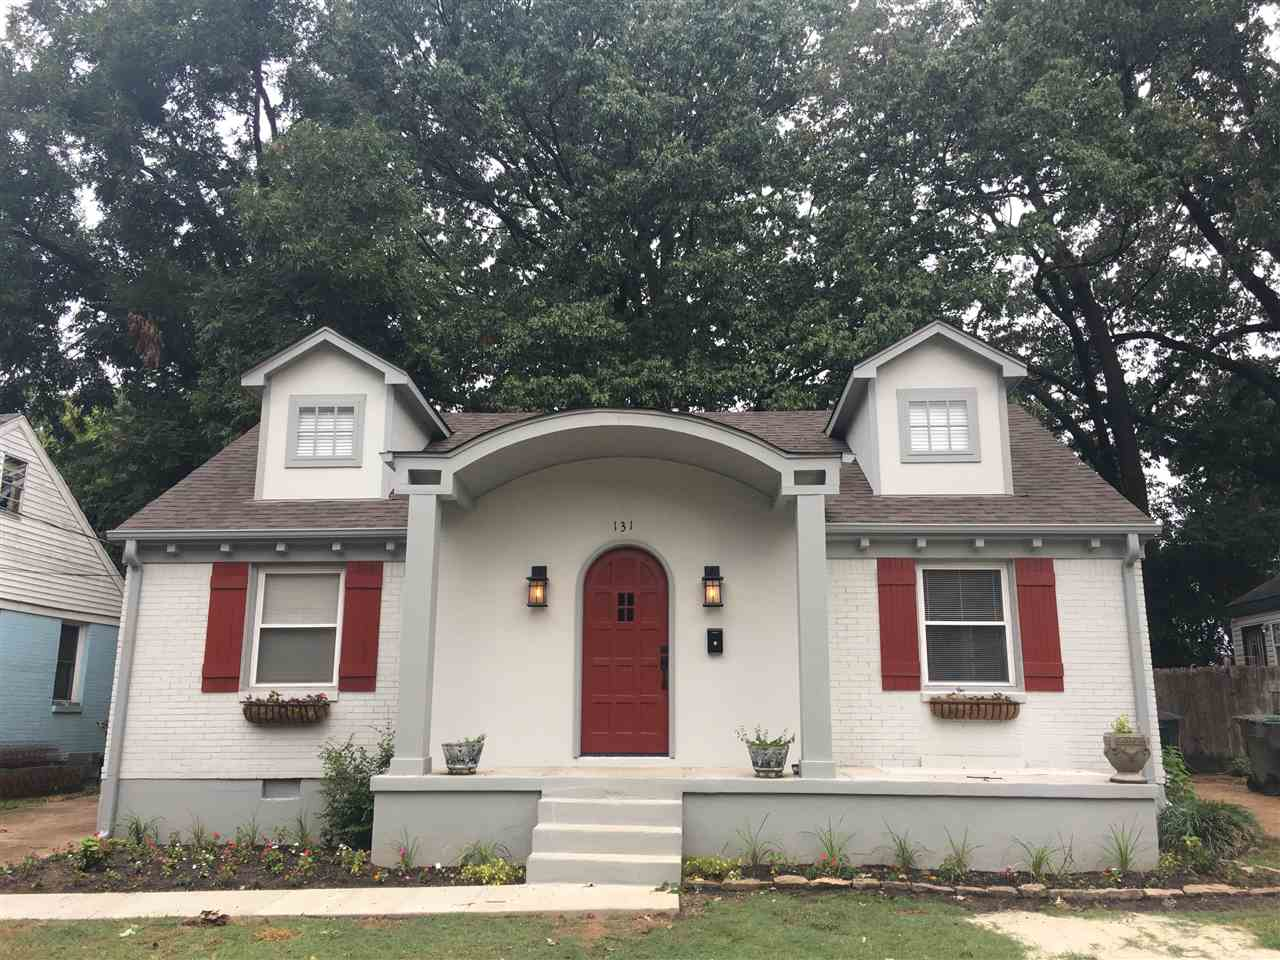 131 Plainview Memphis, TN 38111 - MLS #: 10009047